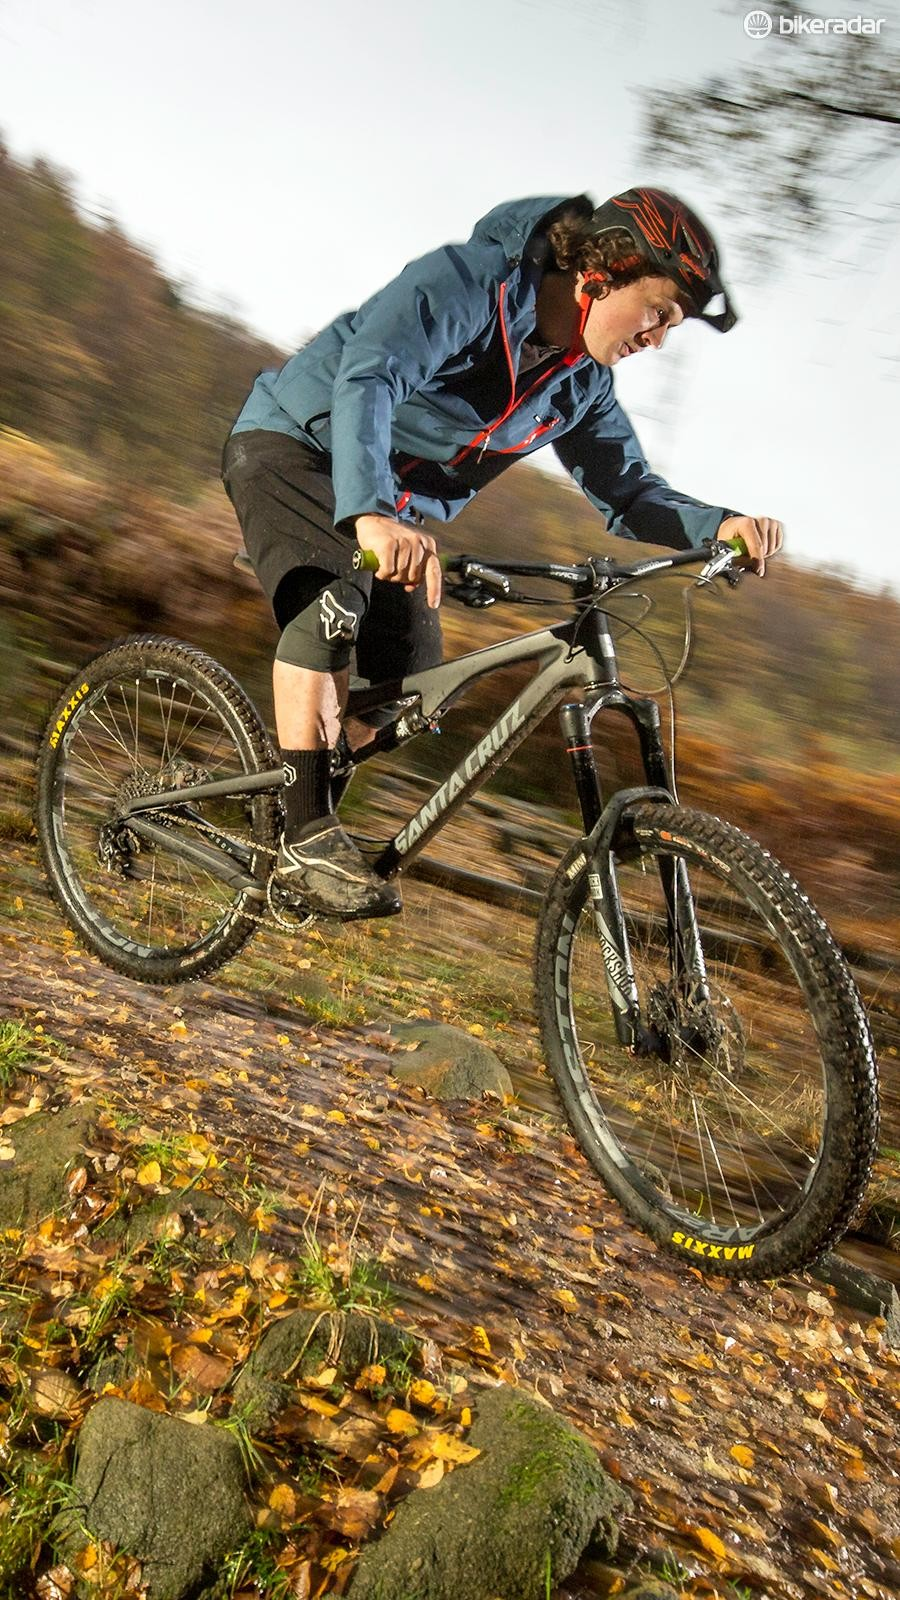 The S AM has all the kit you need to make the most of the Bronson's aggressively dynamic ride, at an impressive price for a premium brand